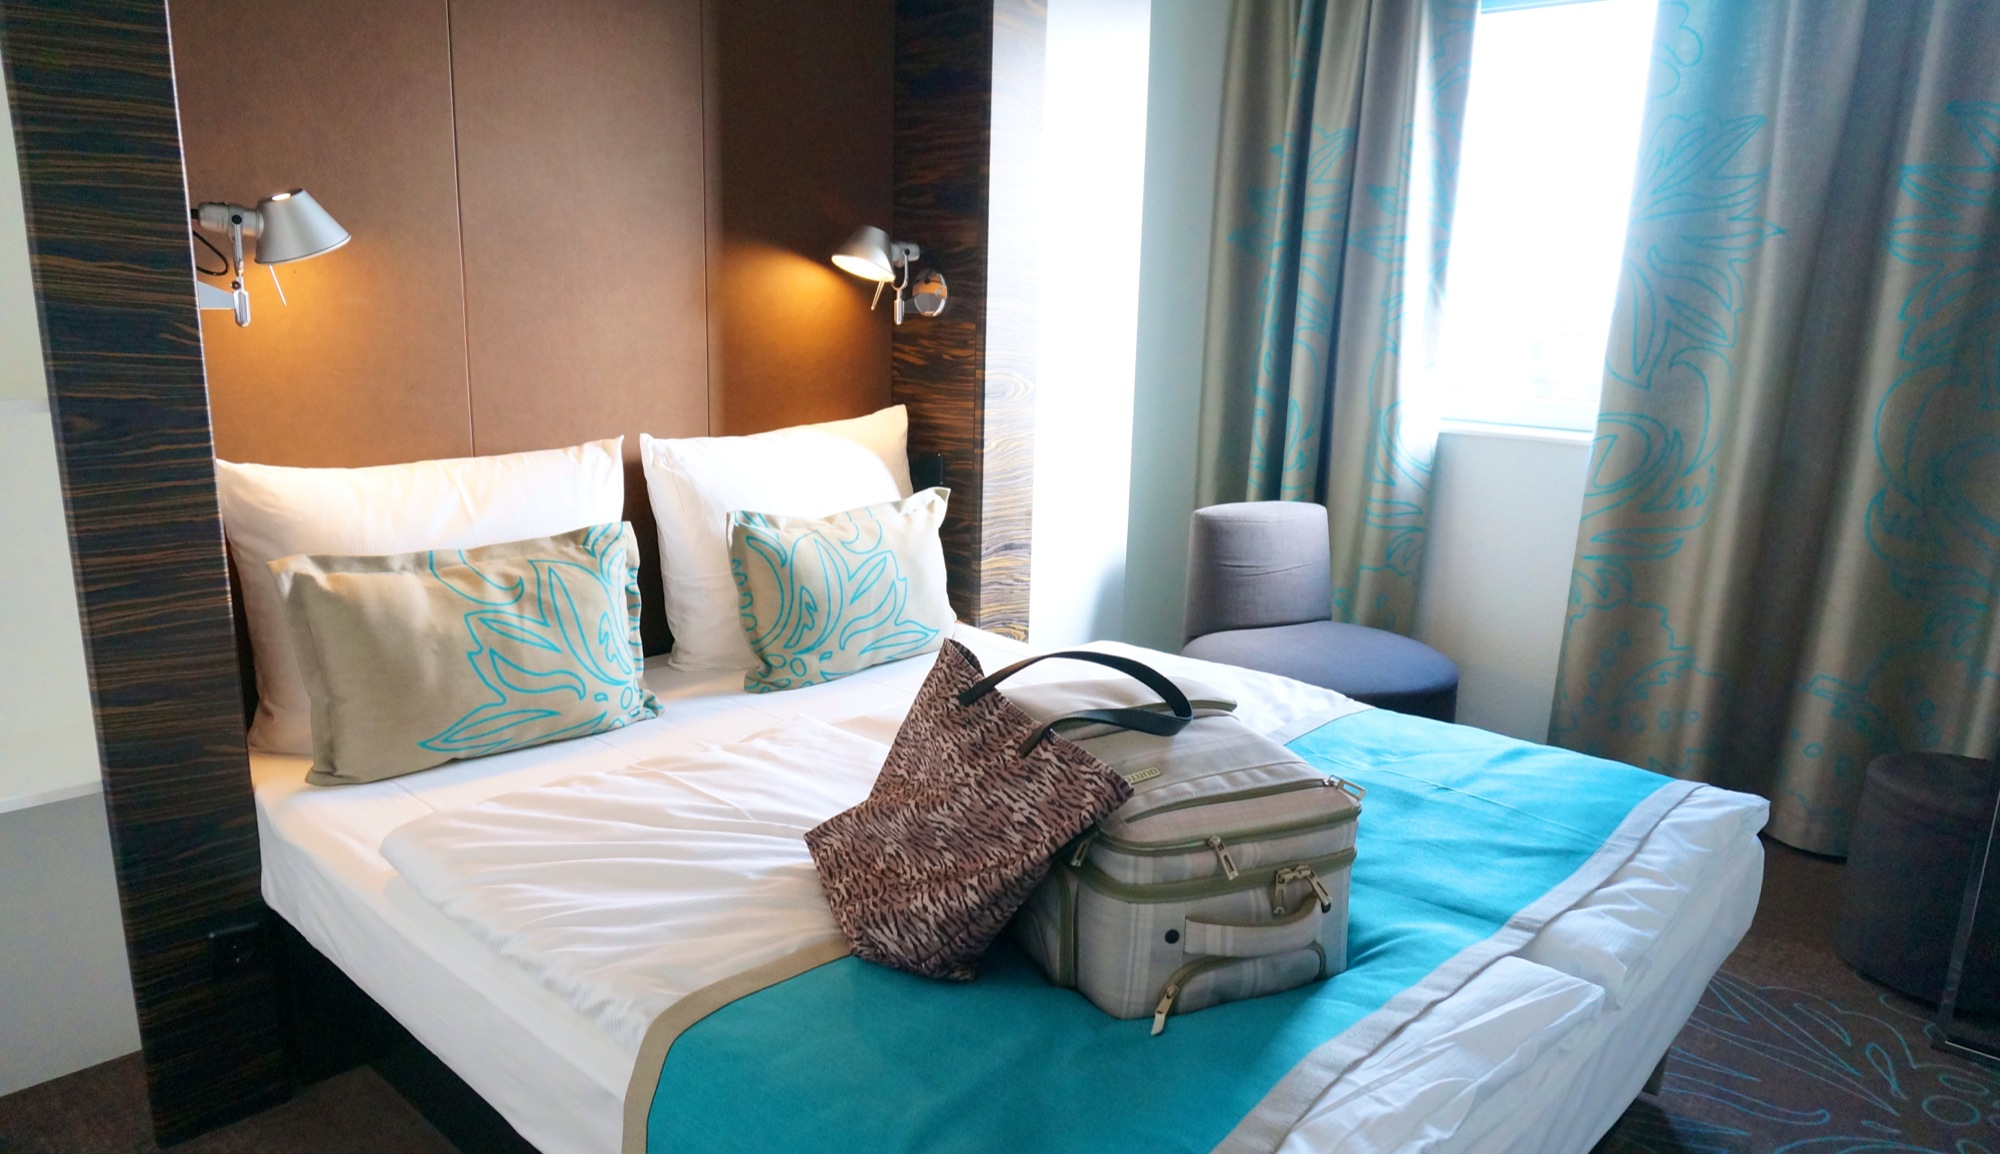 Budget design hotel Motel One | Hamburg - GirlsLove2Travel: https://girlslove2travel.com/motel-one-hamburg